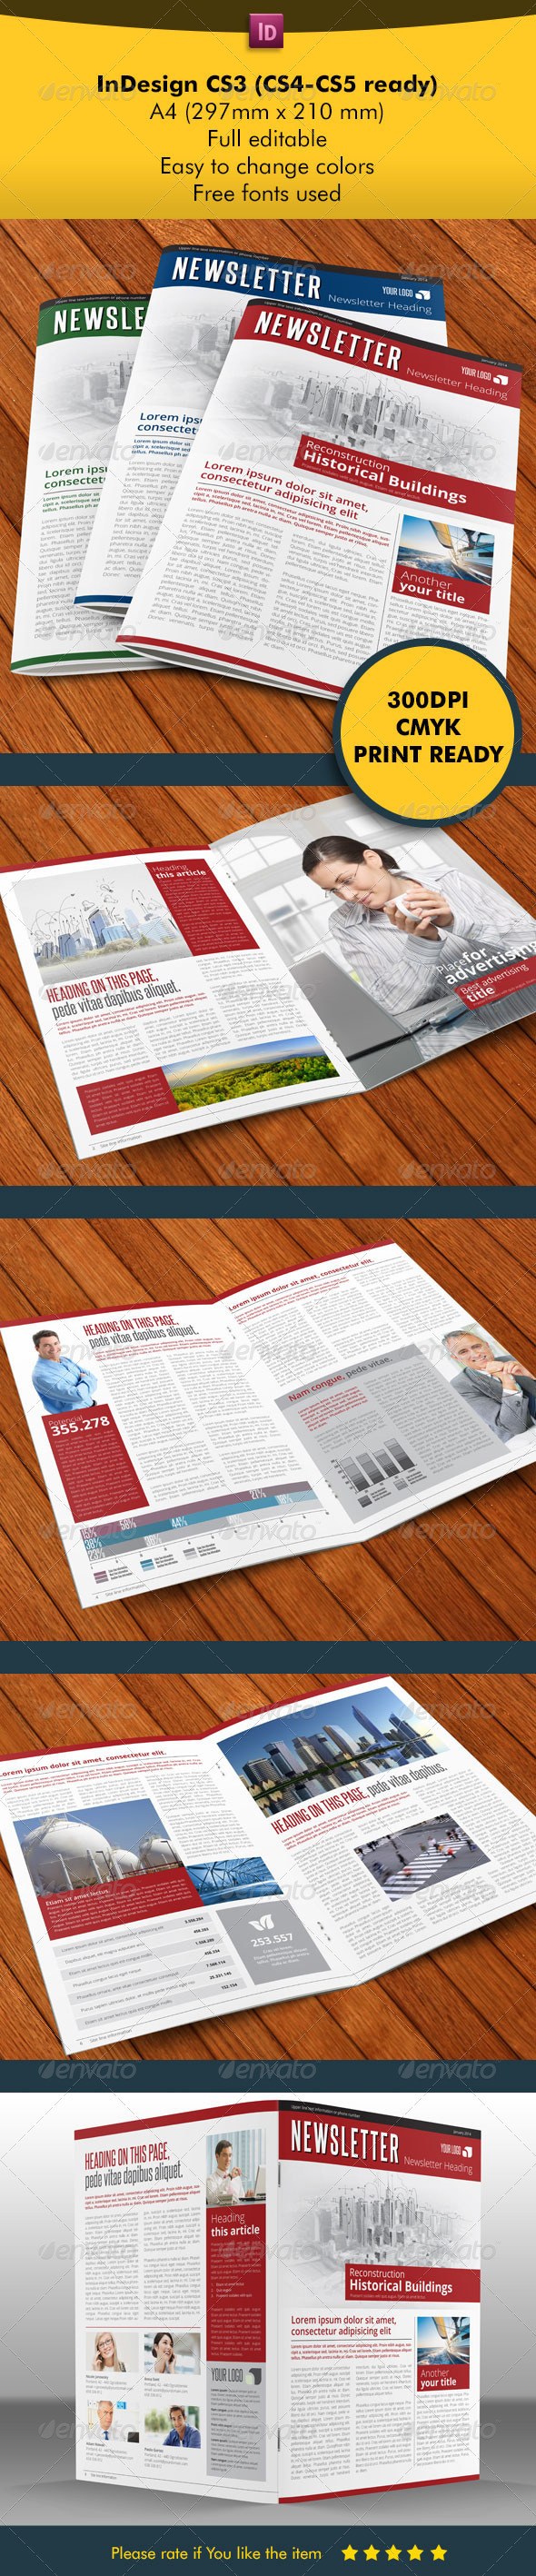 GraphicRiver NewsLette Light and Clean 5462709